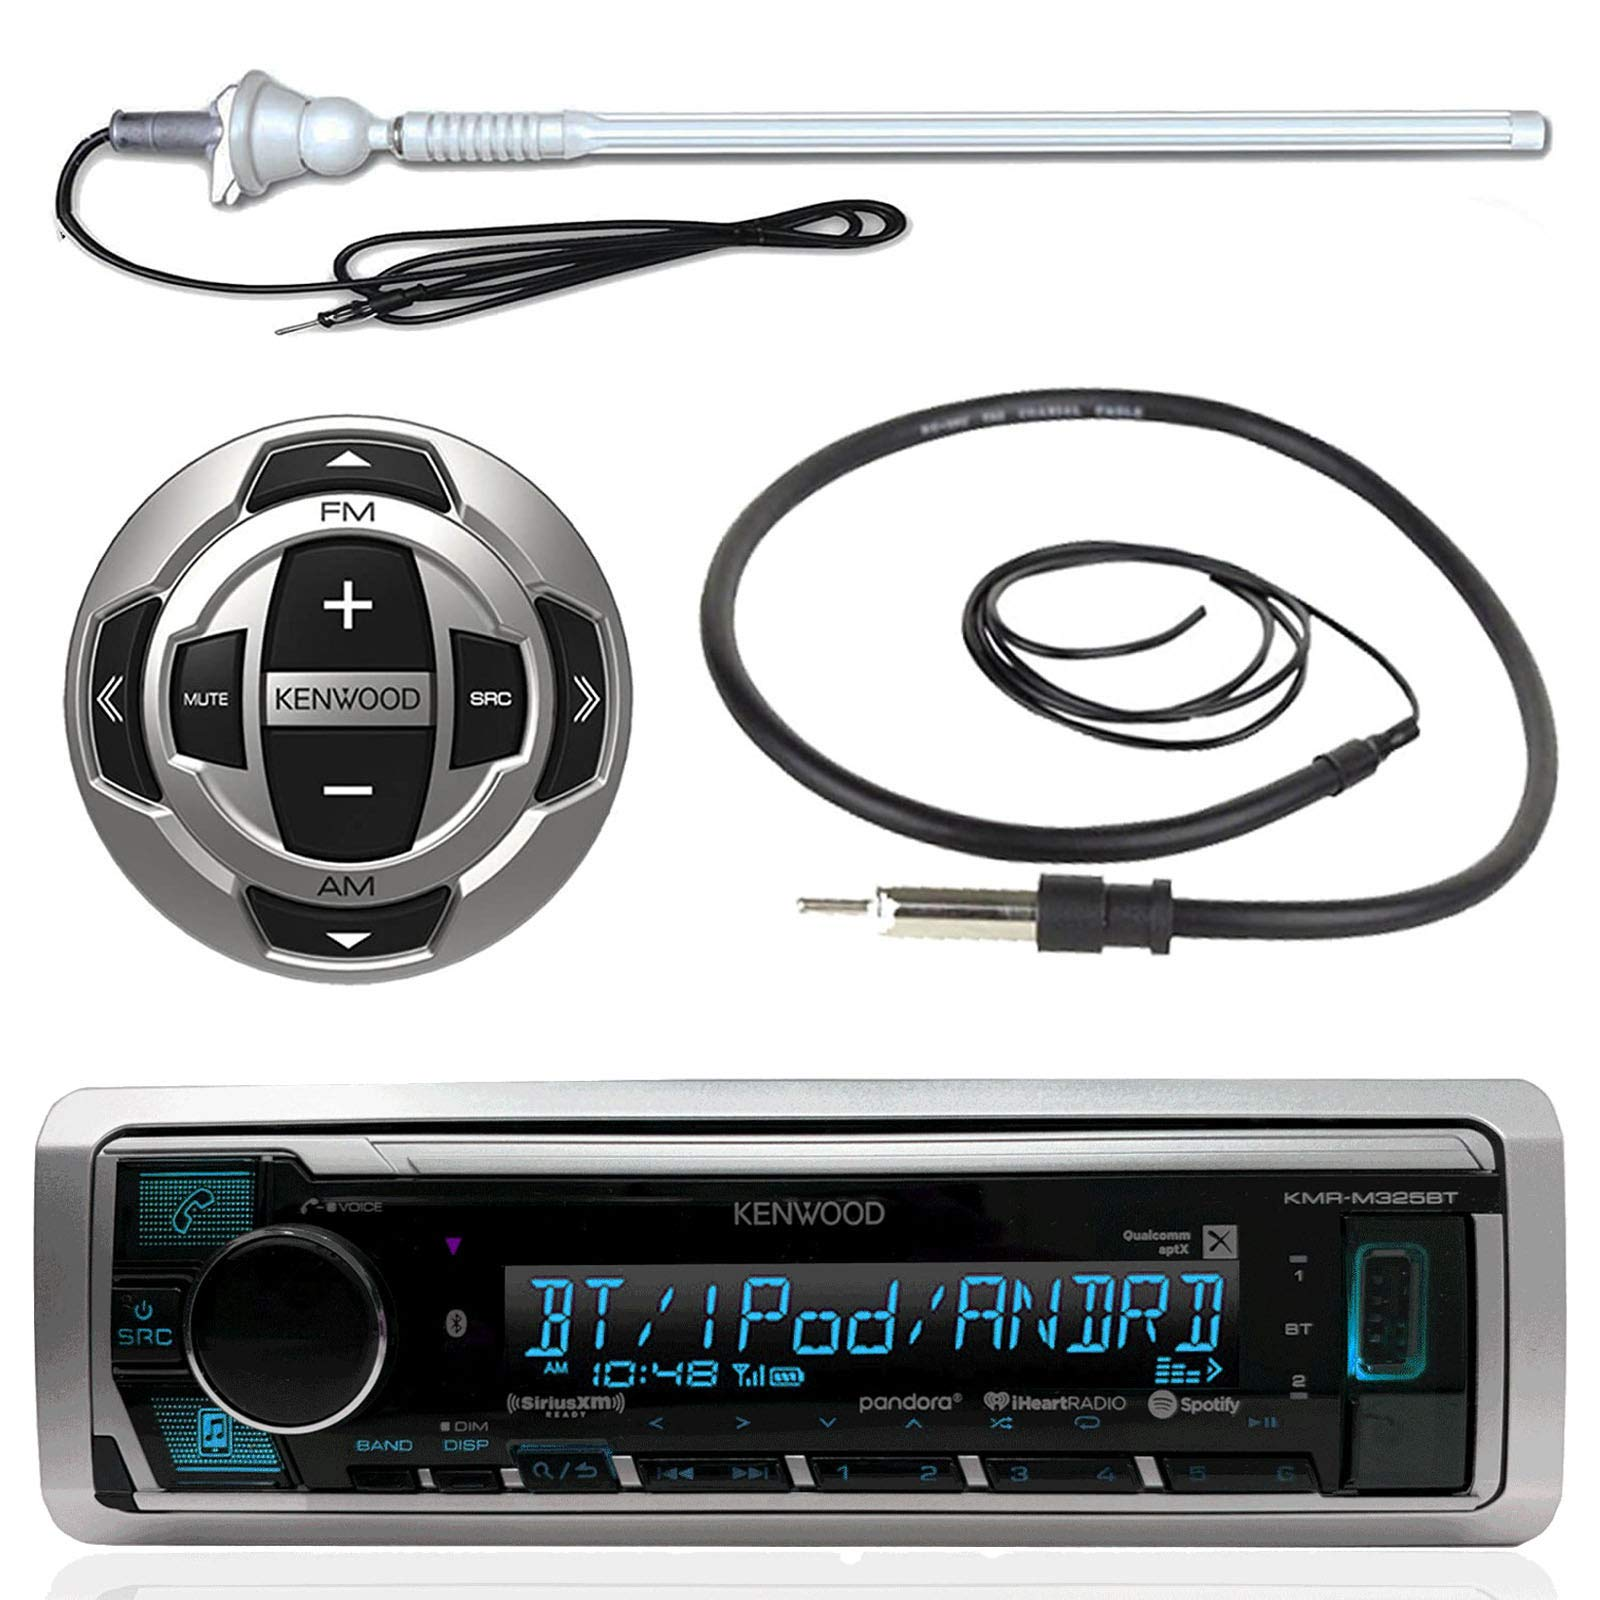 Kenwood MP3/USB/AUX Marine Boat Yacht Stereo Receiver Player Bundle Combo w/ RC35MR Wired Remote Control, Enrock Water Resistant 22'' Radio Antenna, Outdoor Rubber Mast AM/FM 45'' Antenna by Enrock Kenwood